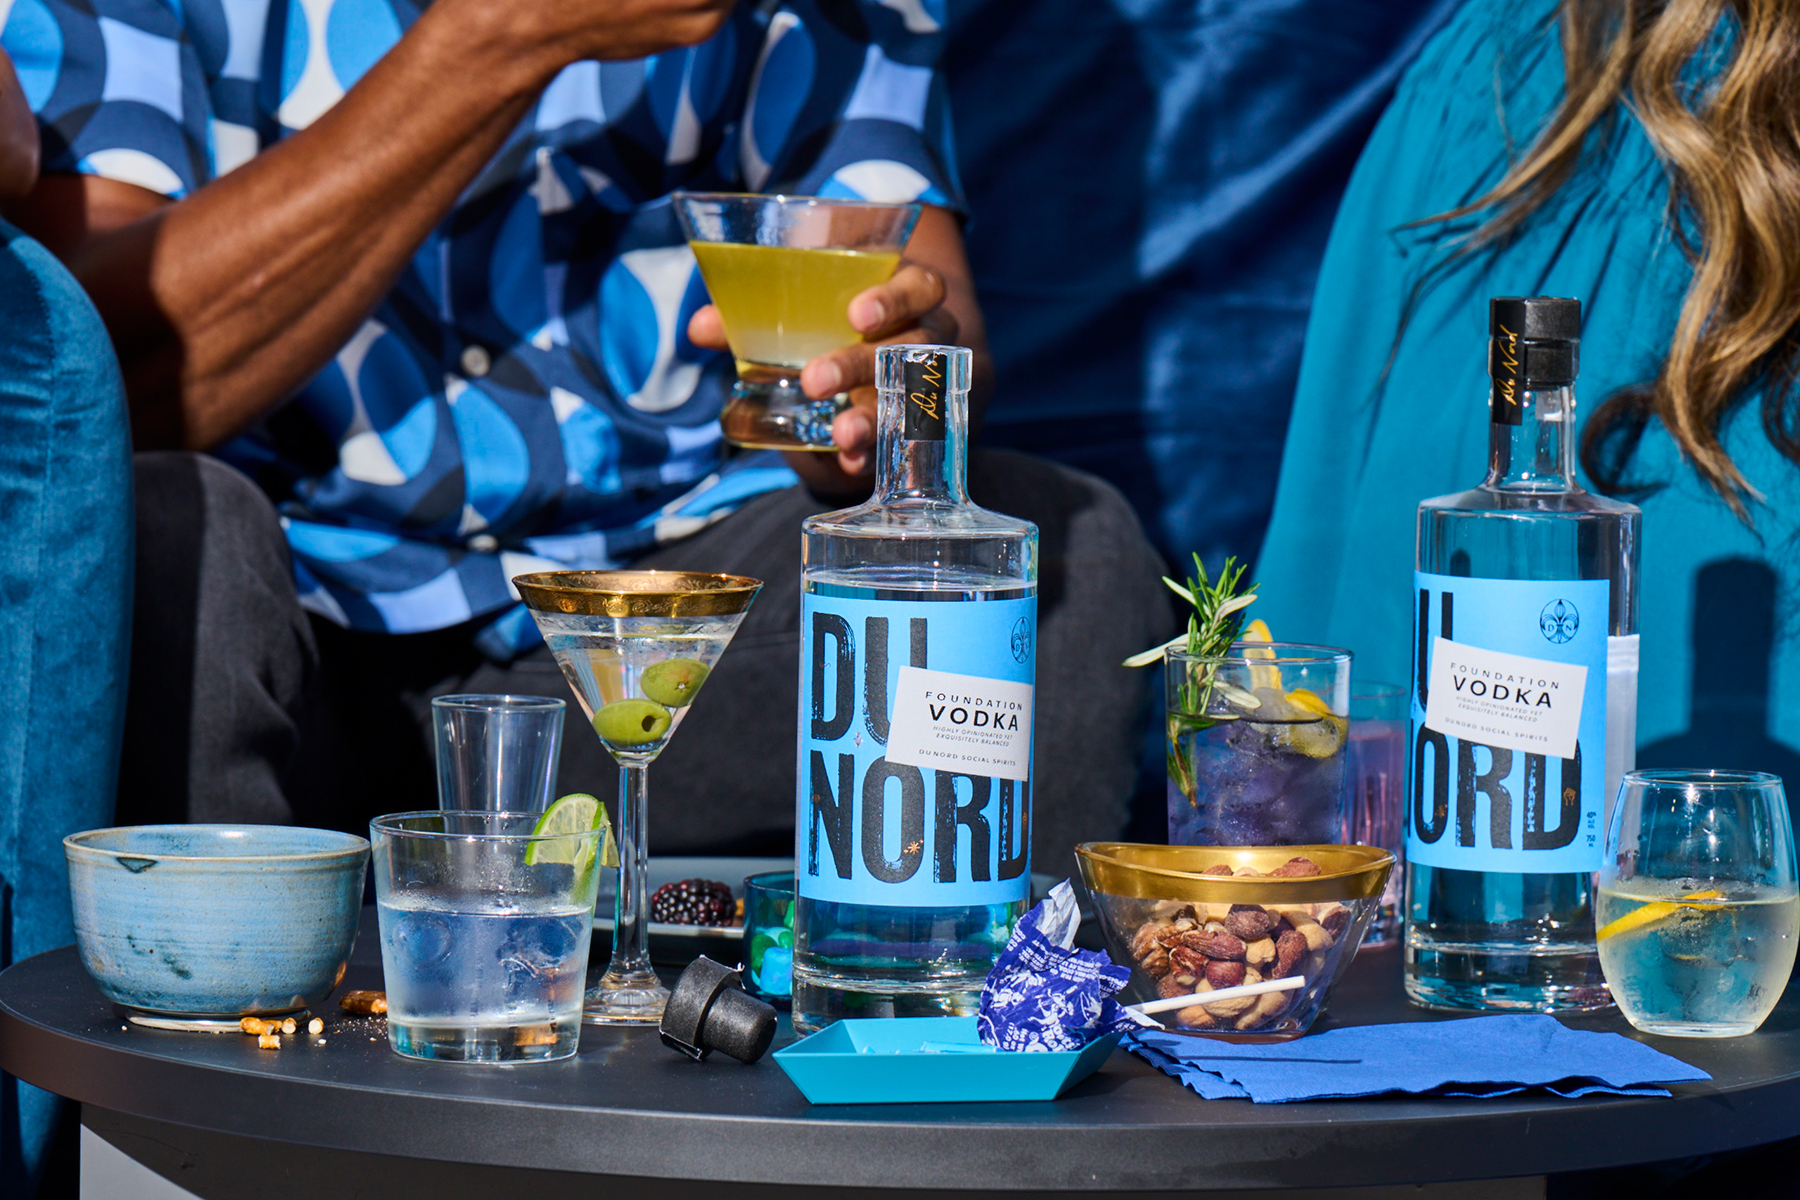 Cocktails made with Dunord vodka